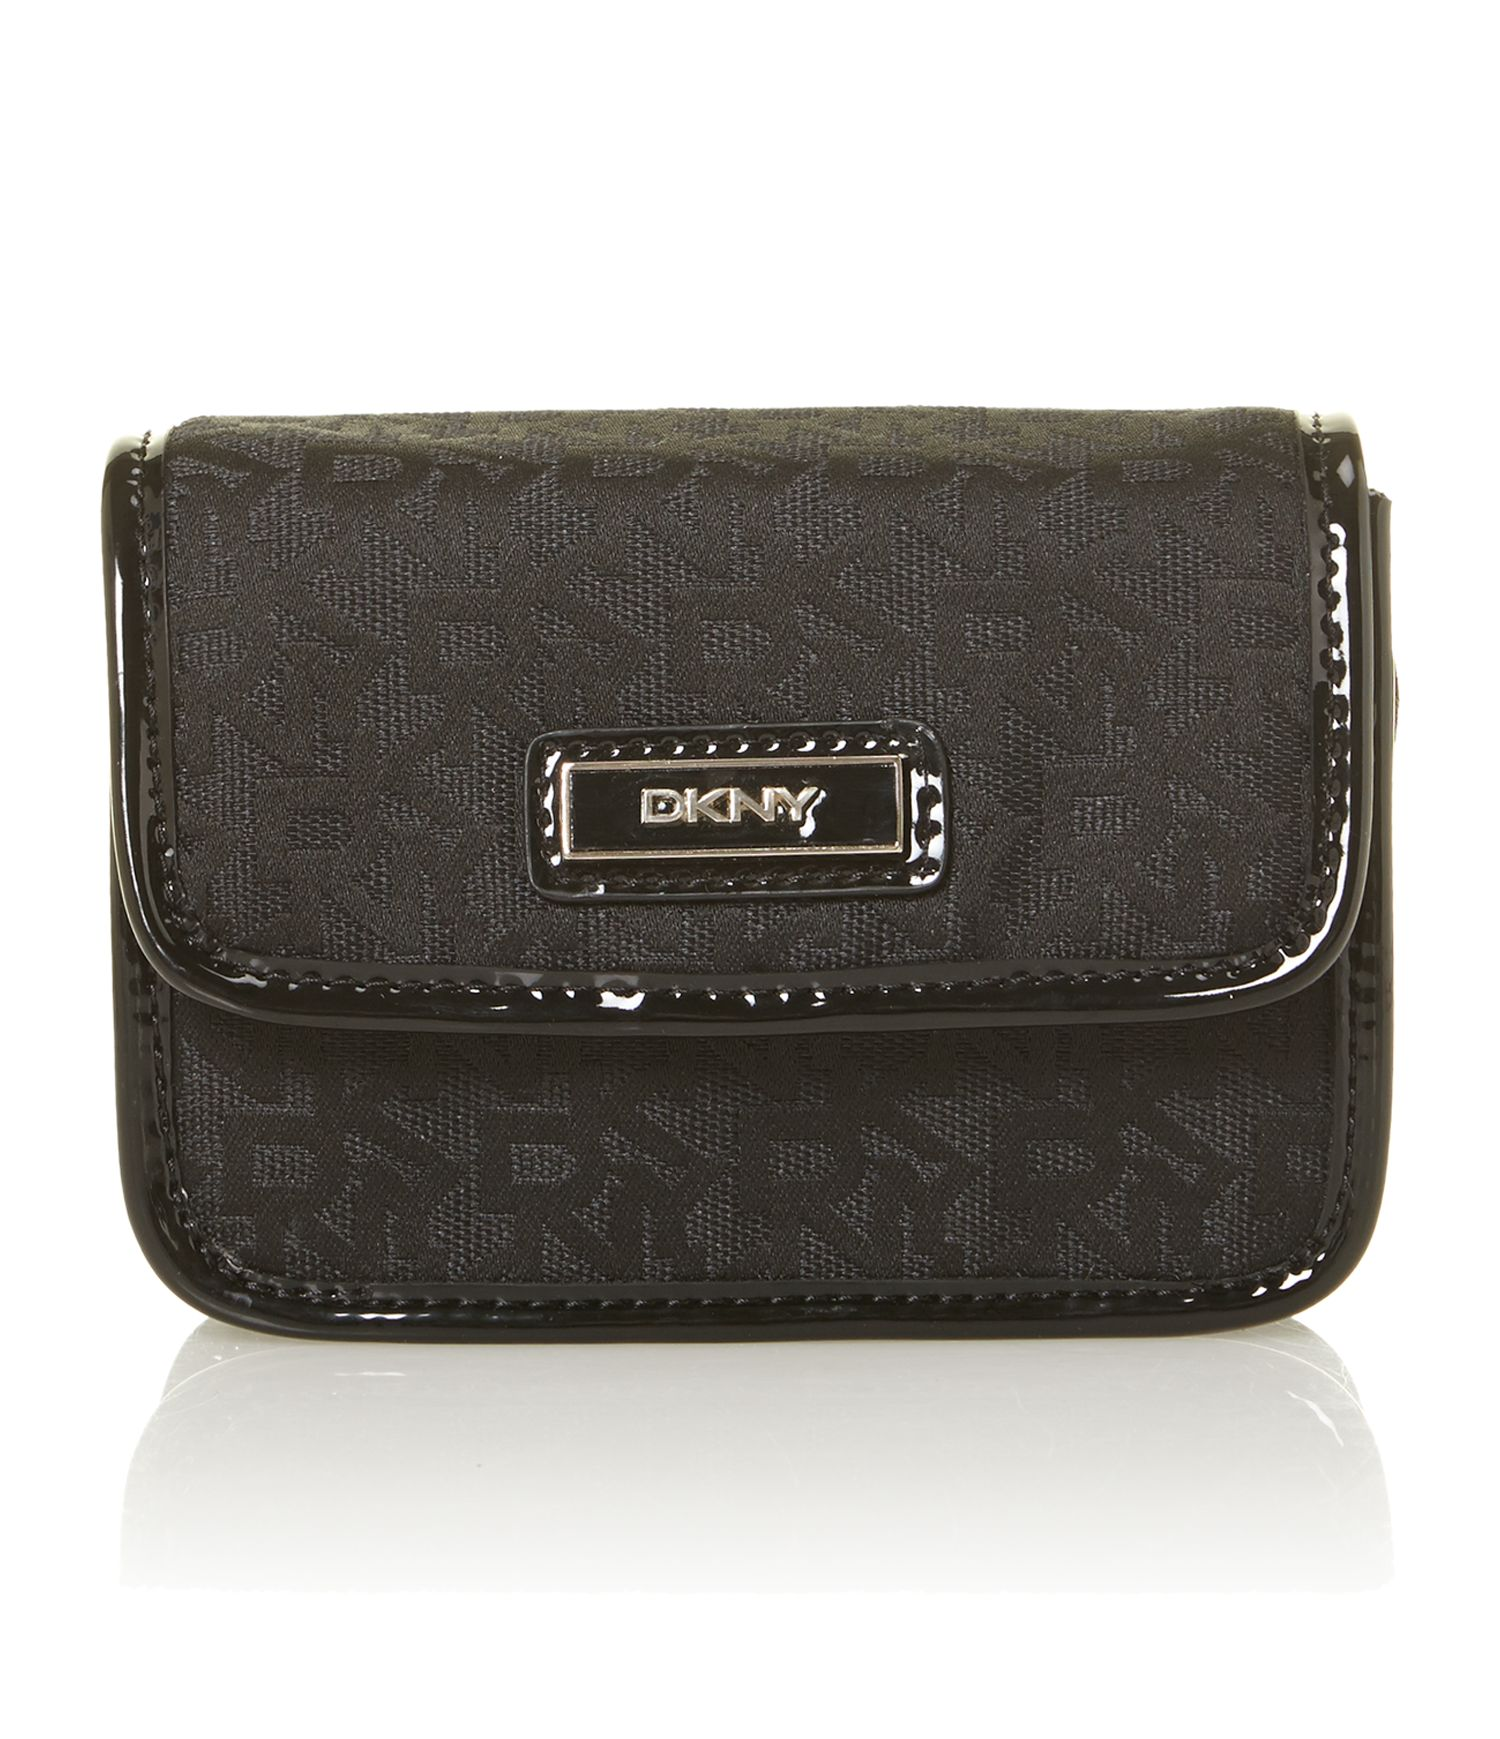 Black patent mini crossbody bag